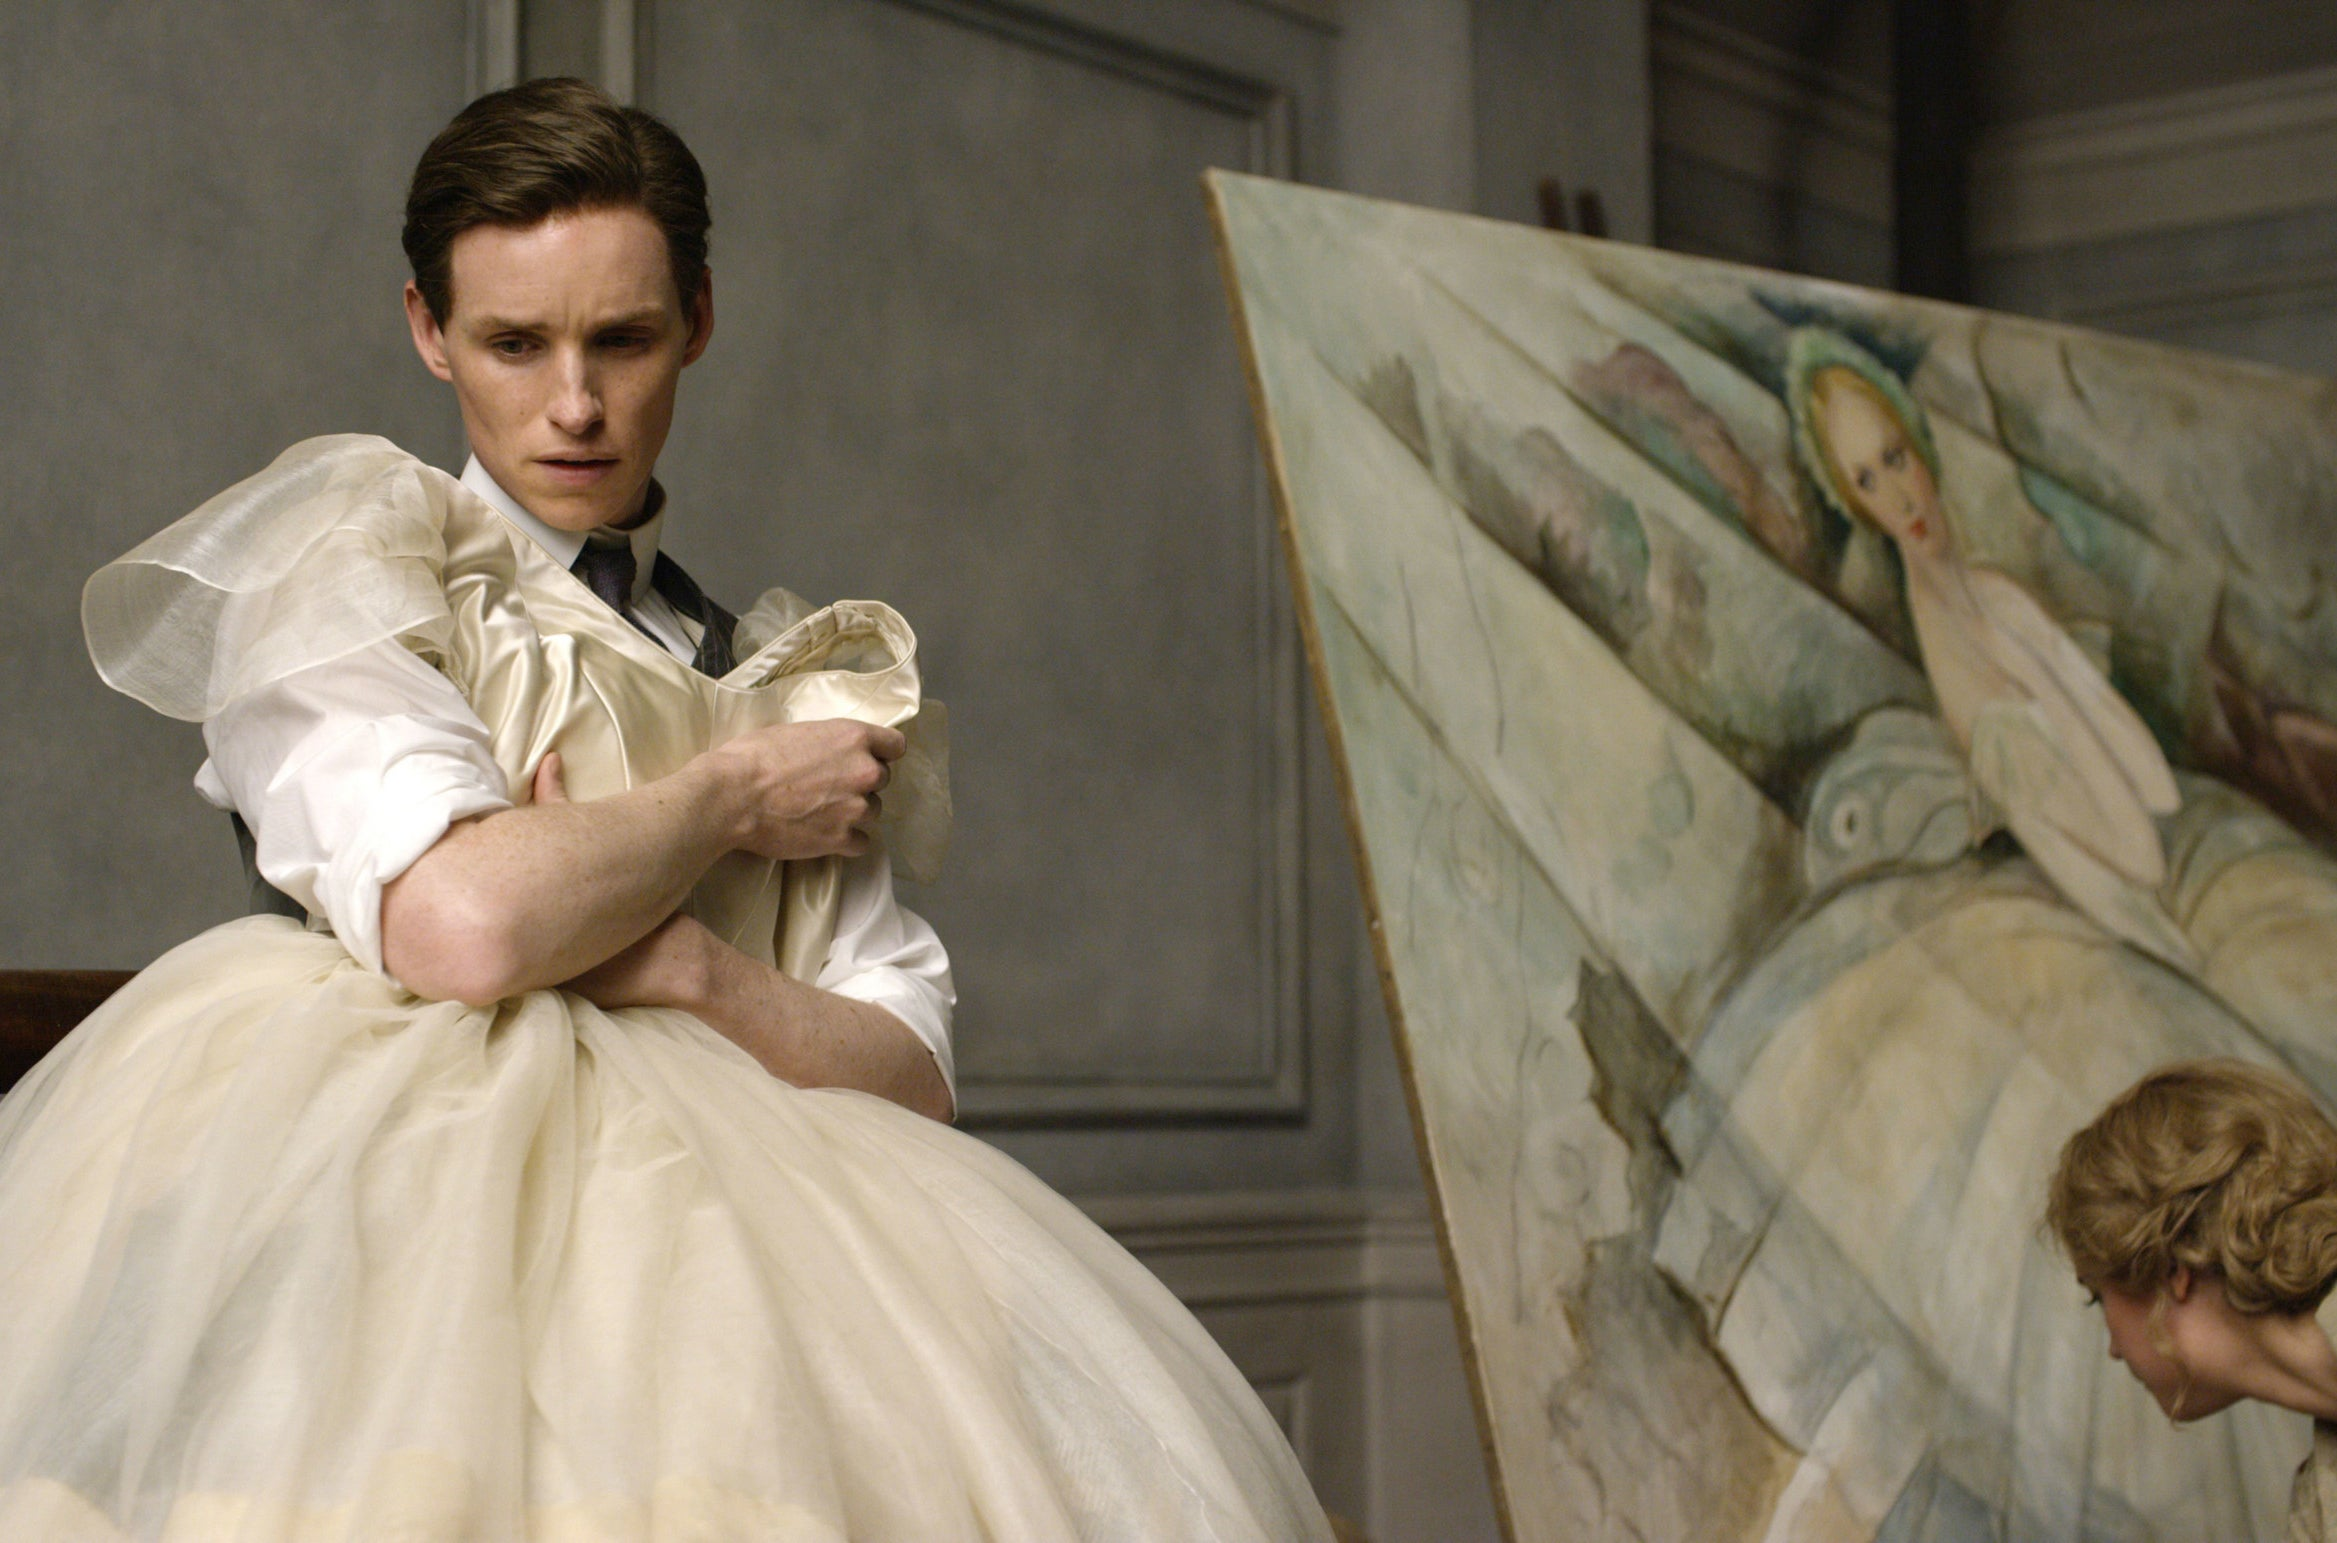 Einar, in a suit, holds up a dress in front of themselves while being painted